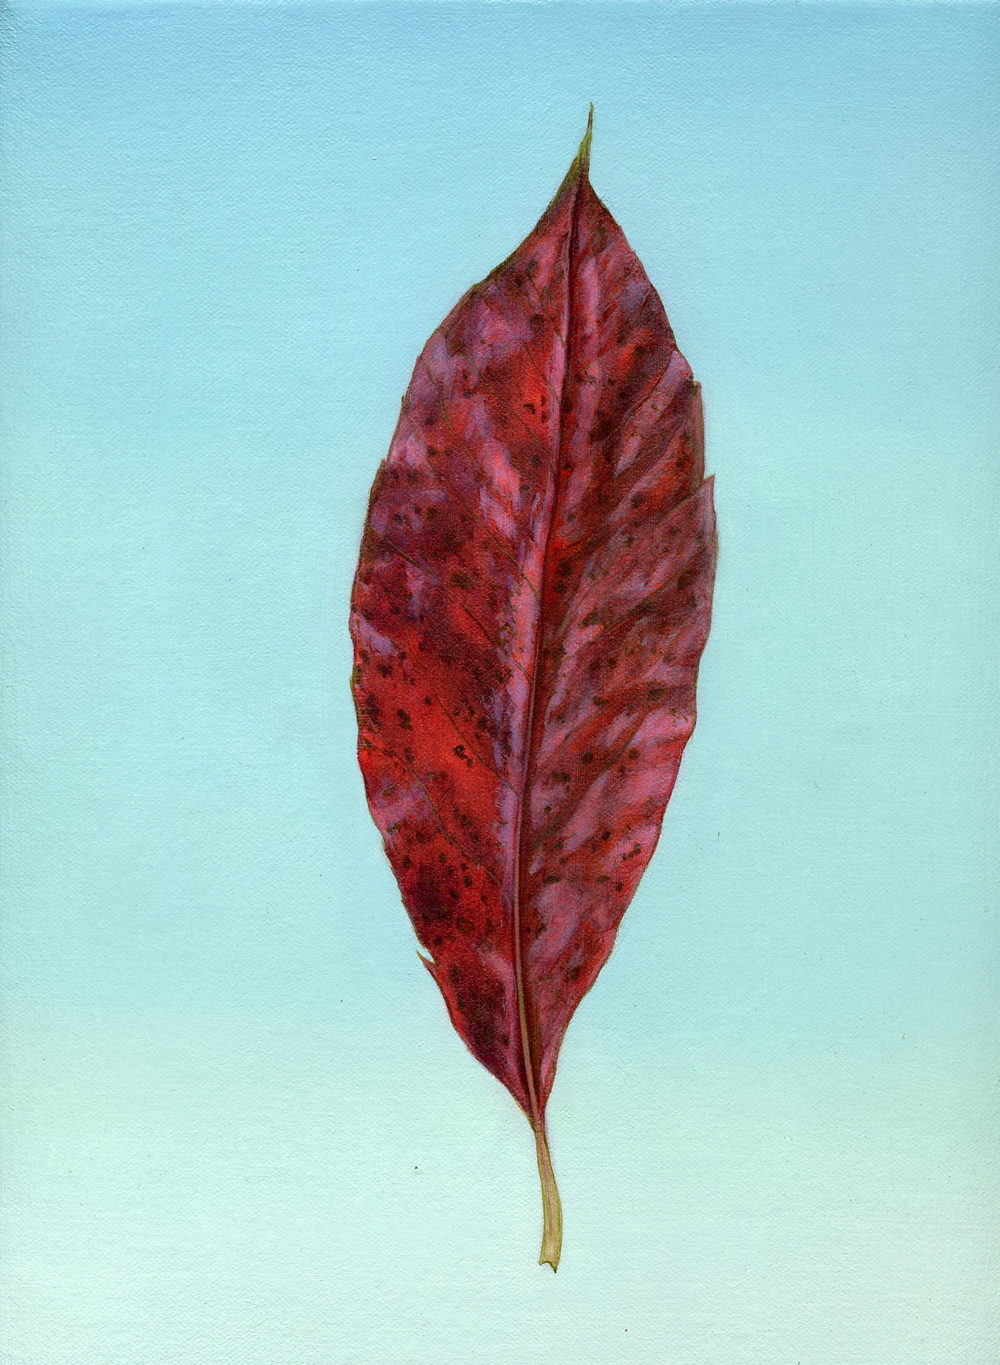 paint leaf red leaf slide show299.jpg